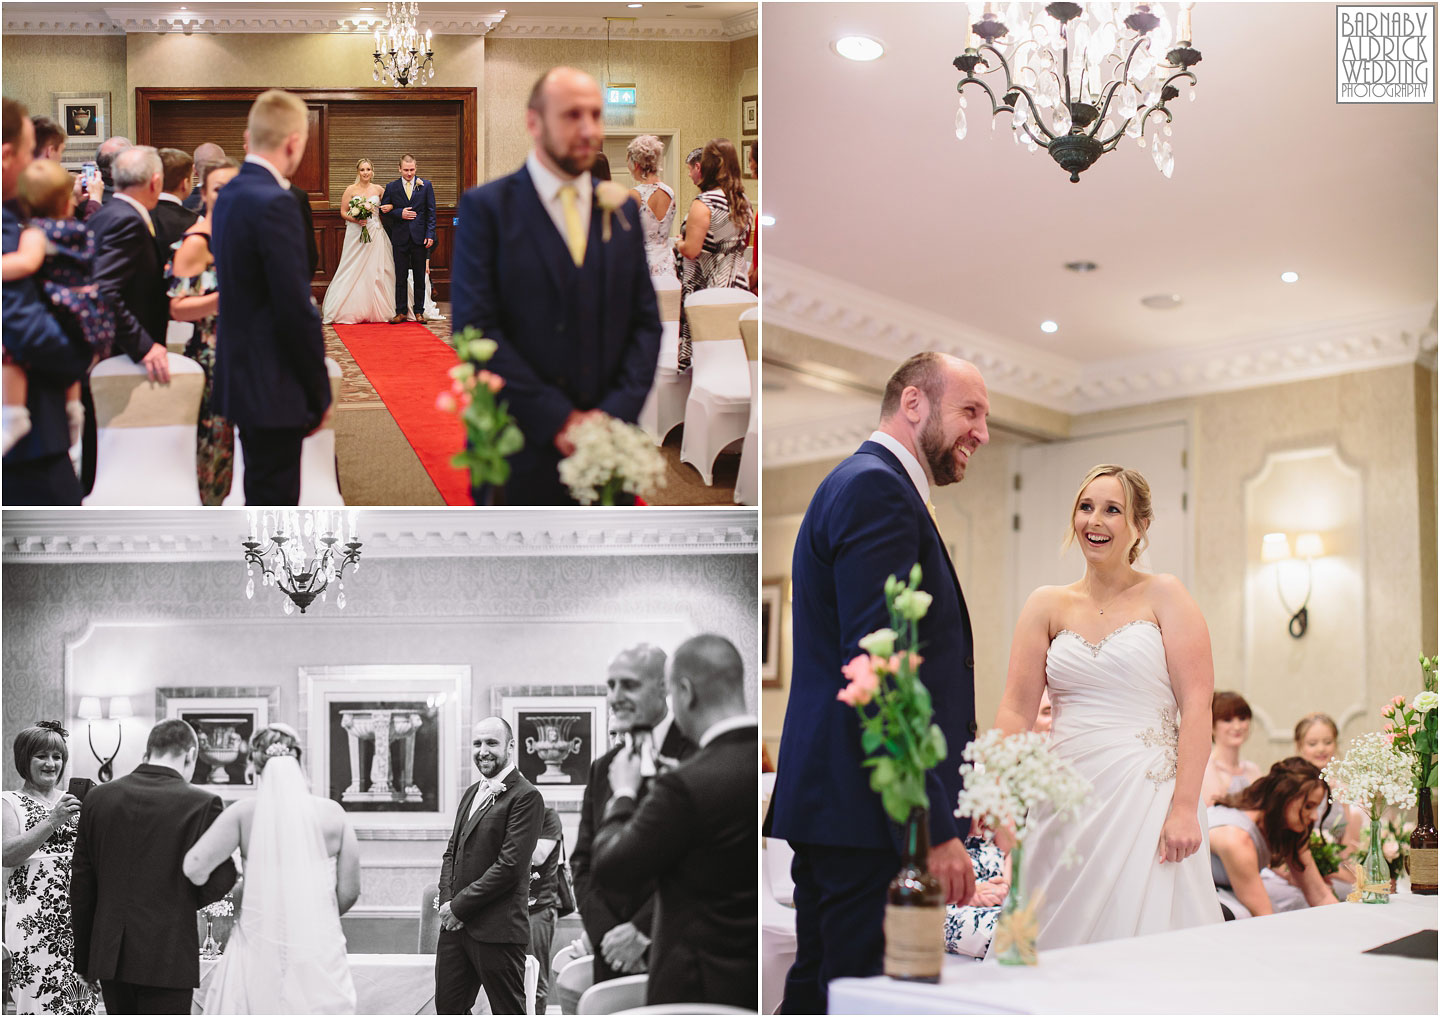 Wood Hall Hotel Wetherby civil ceremony photos, Wood Hall Wedding Photos, Wood Hall Wedding Photographer